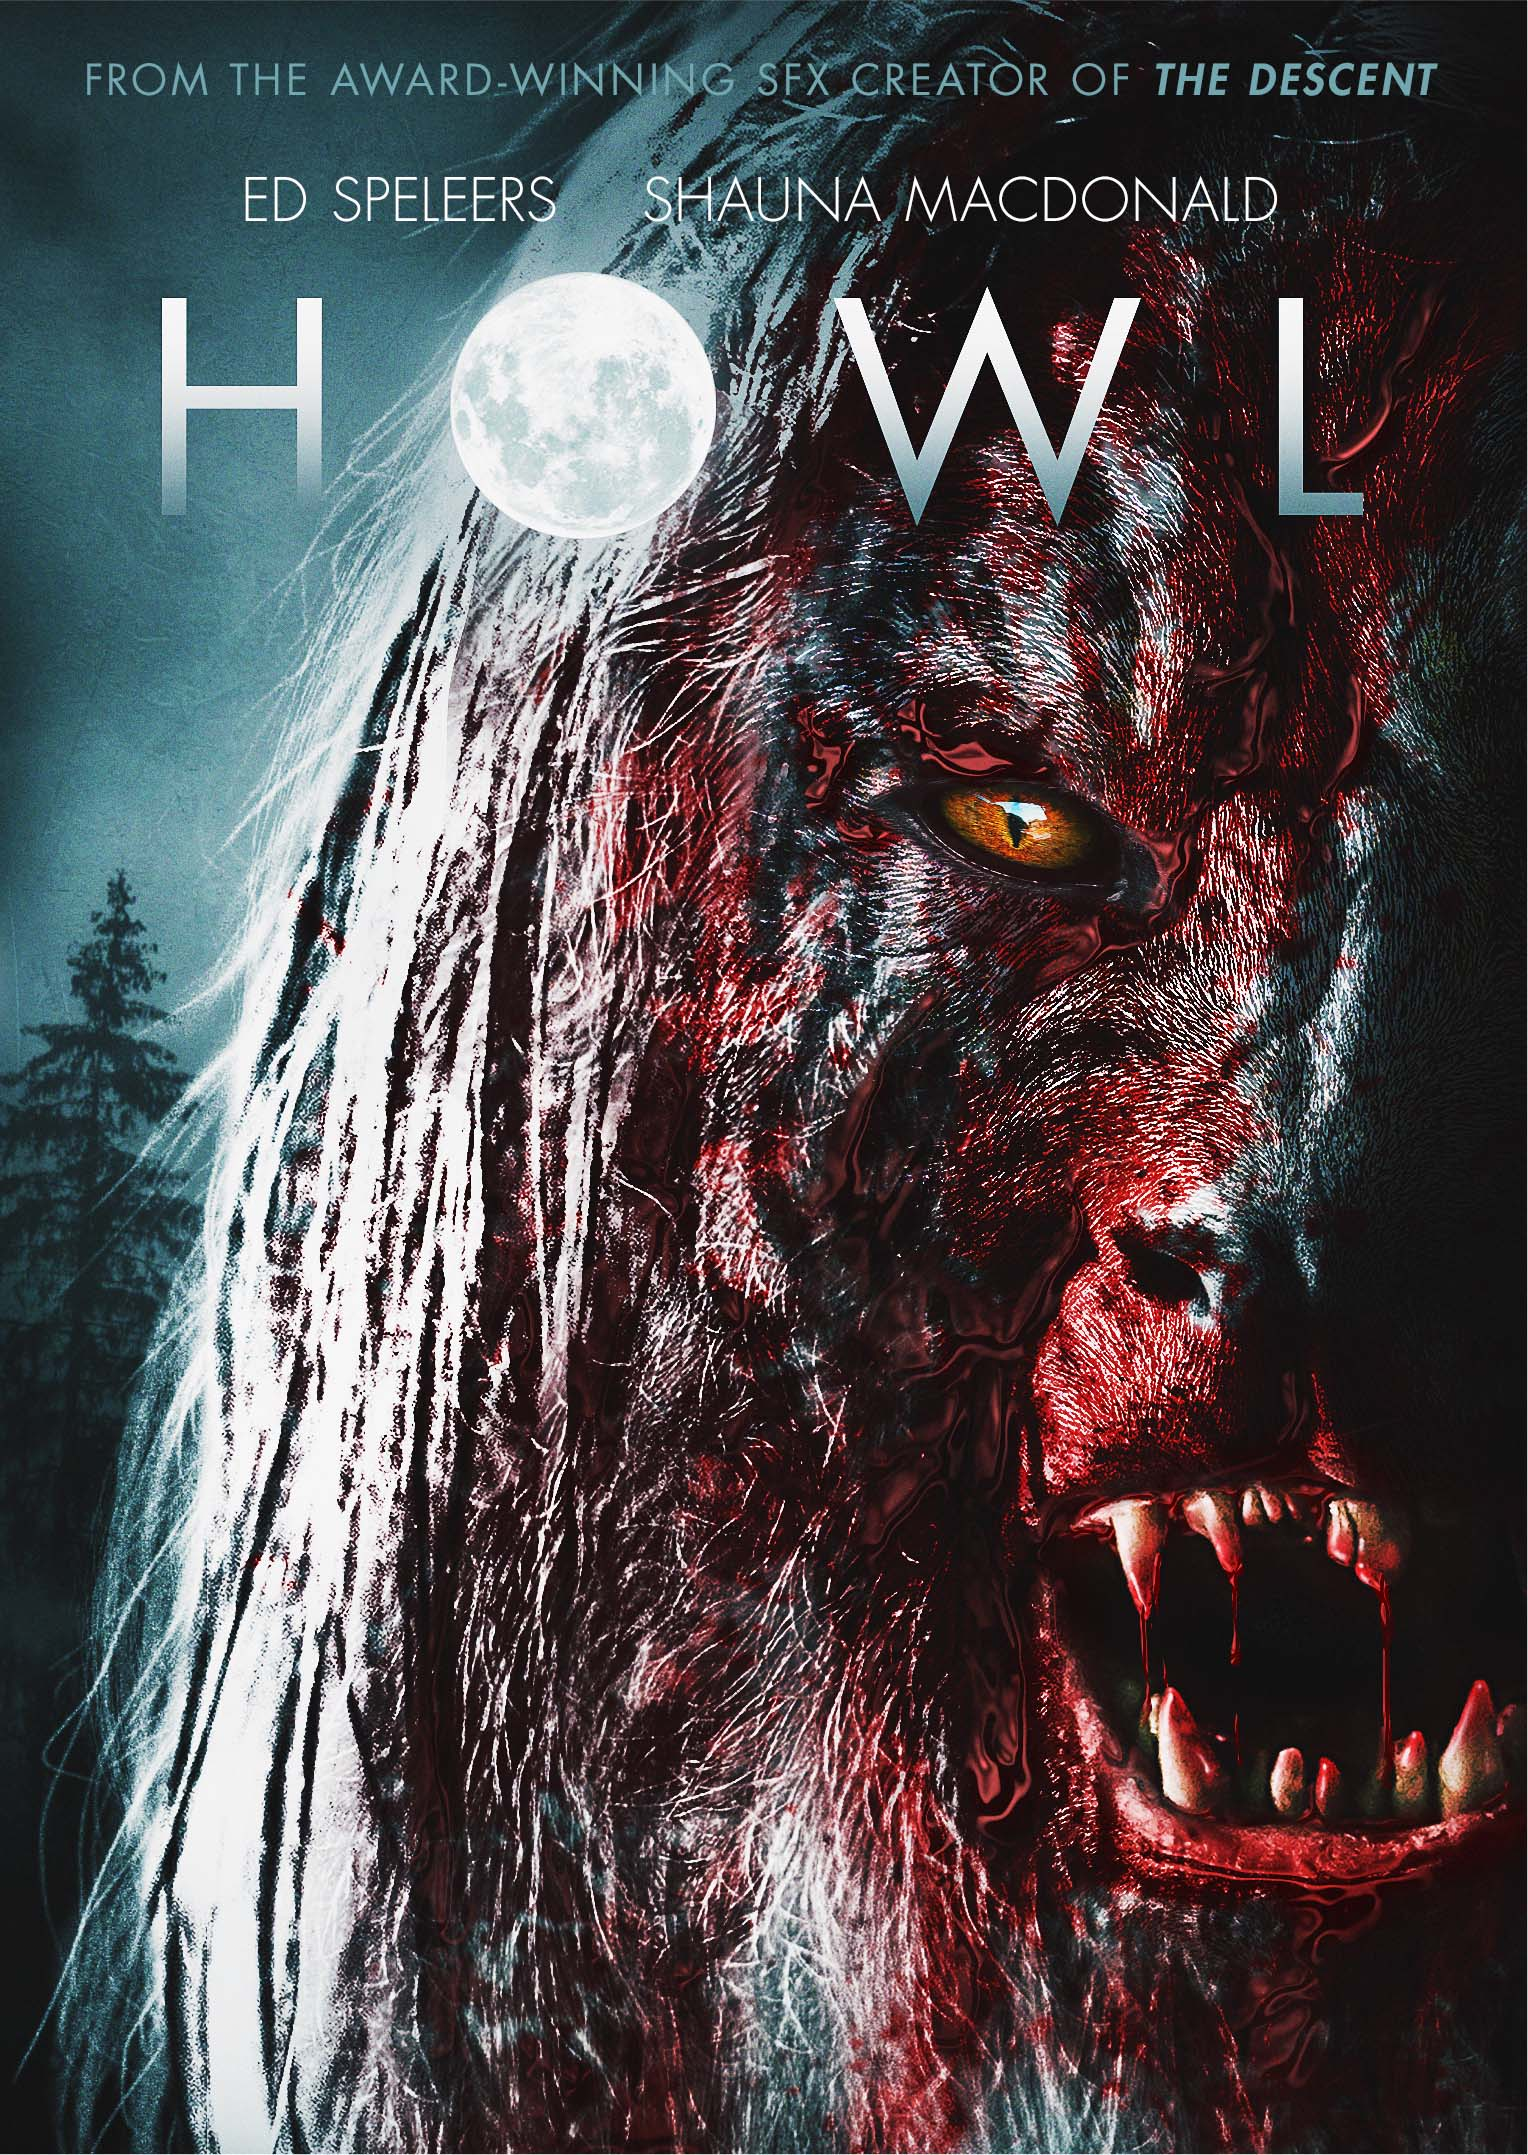 Howl Blu-ray Review